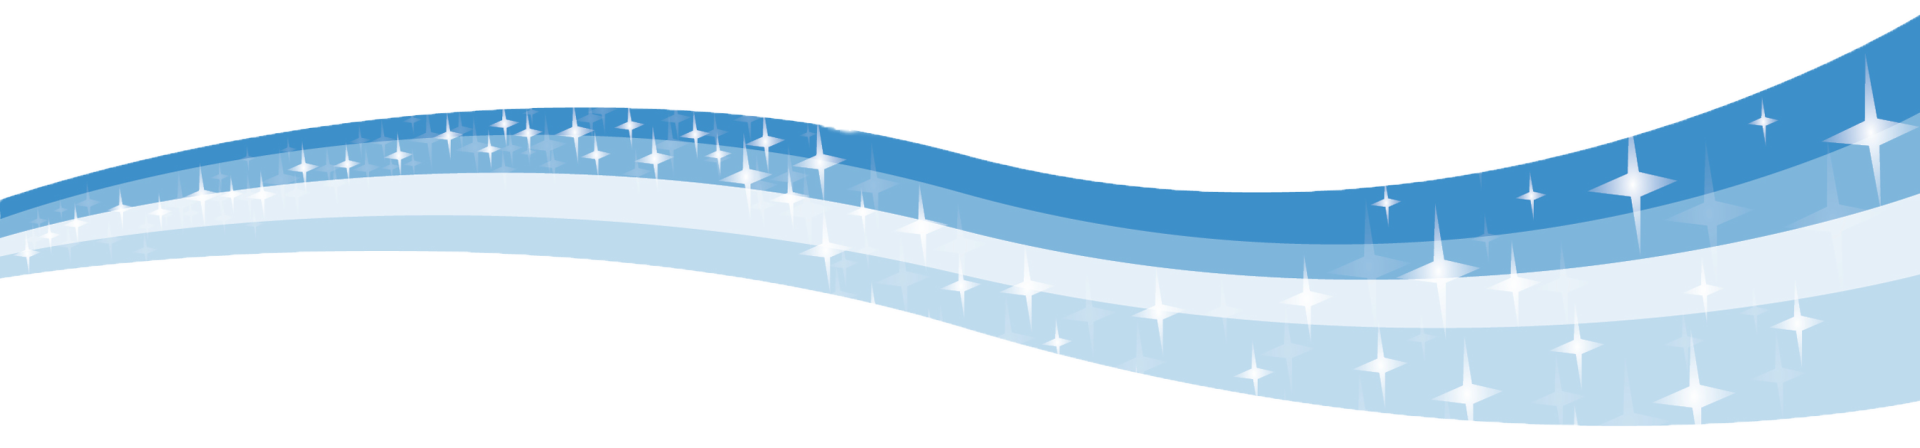 1920x448 Water Waves Border Clipart Free Clipart Images